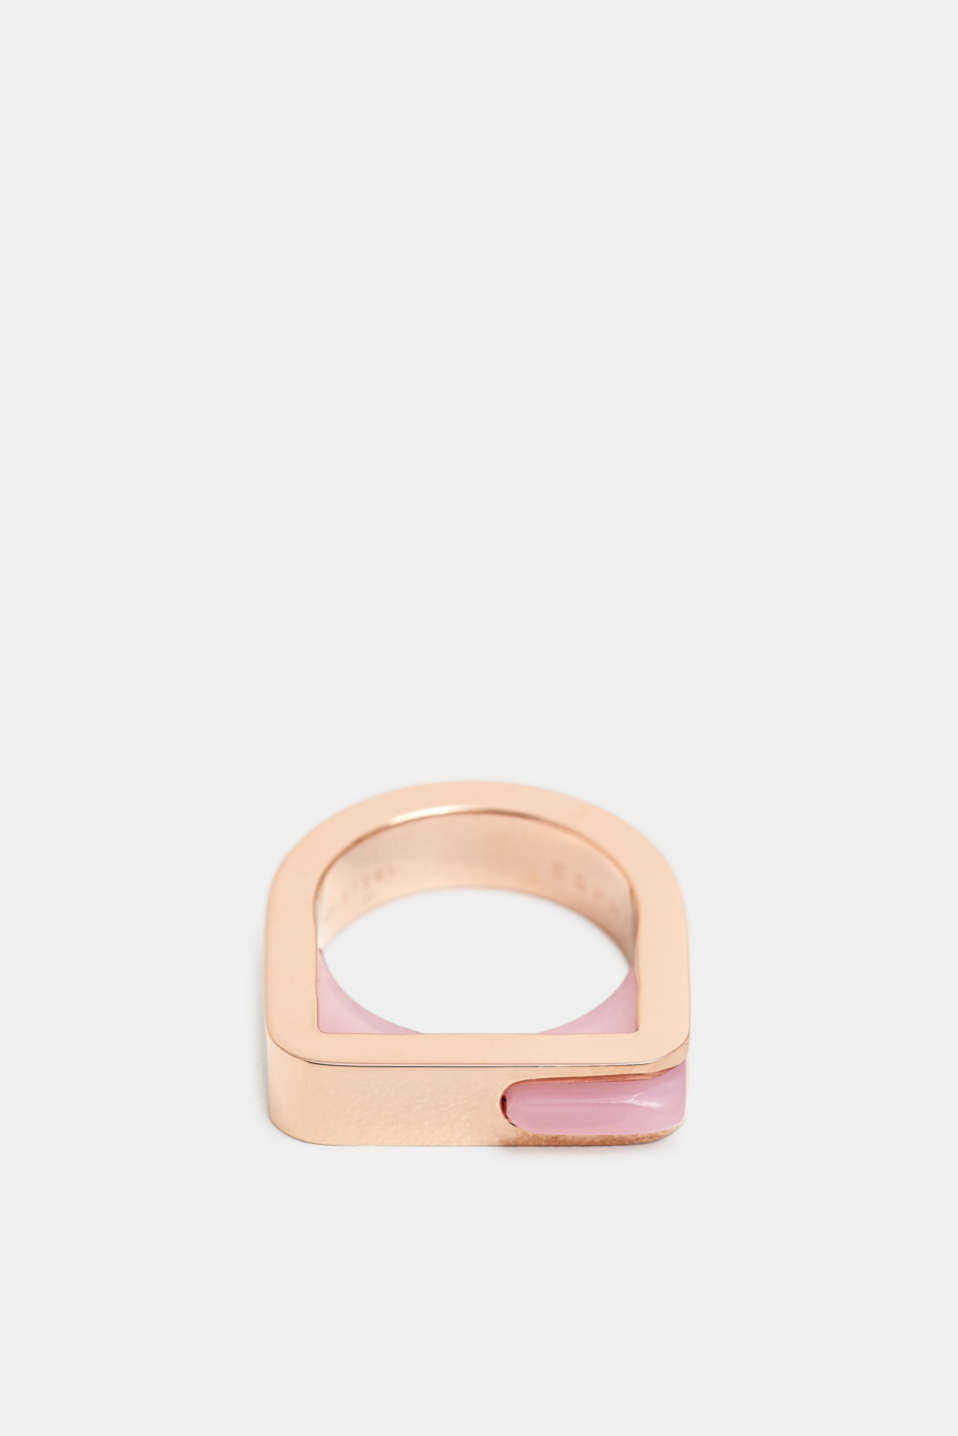 Stainless steel statement ring, ROSEGOLD, detail image number 0